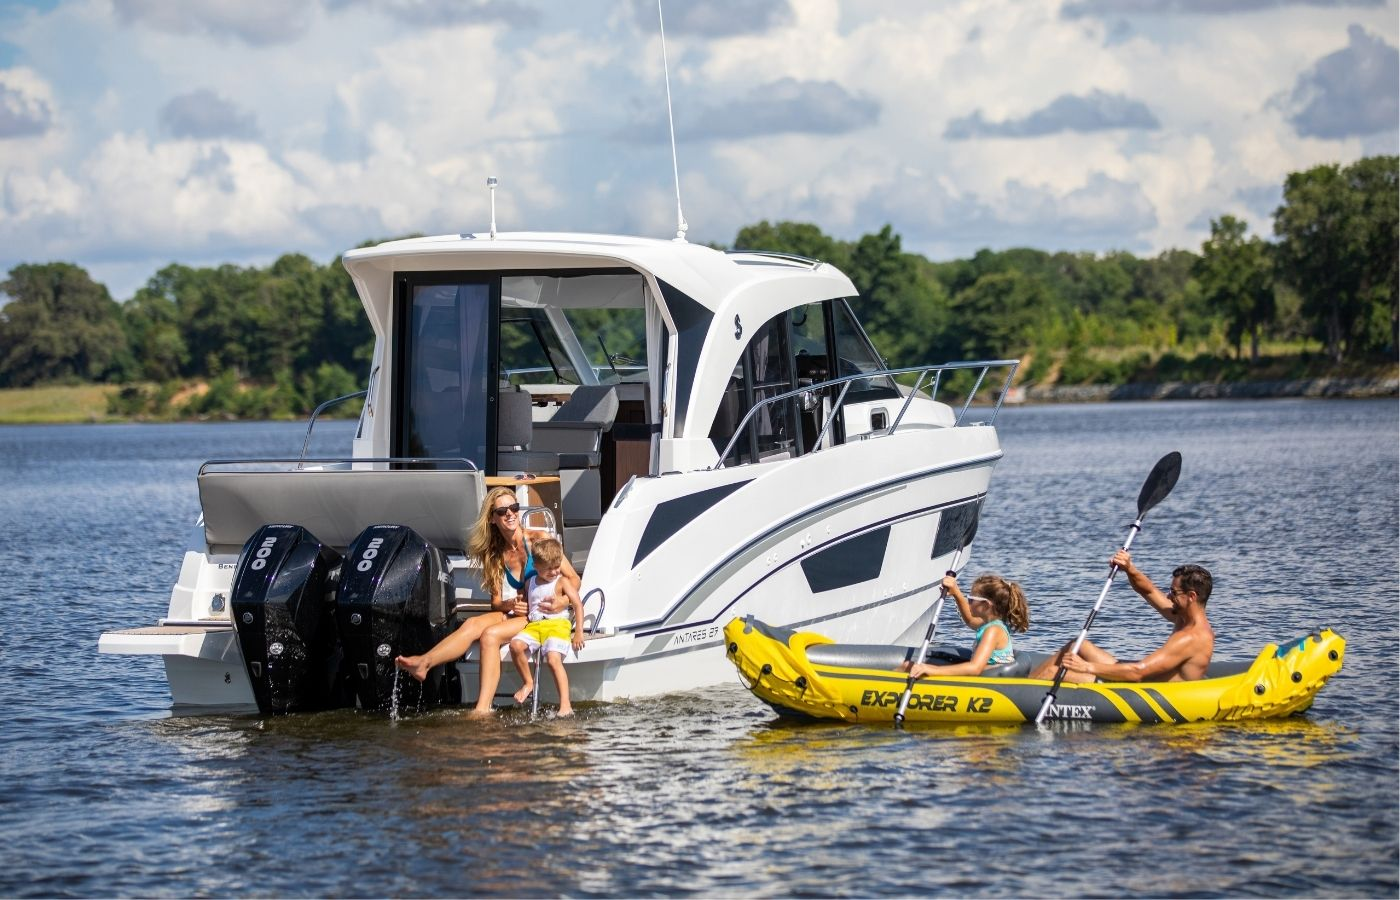 Data Shows Rise In First Time Boat Owners + New Boat Purchases